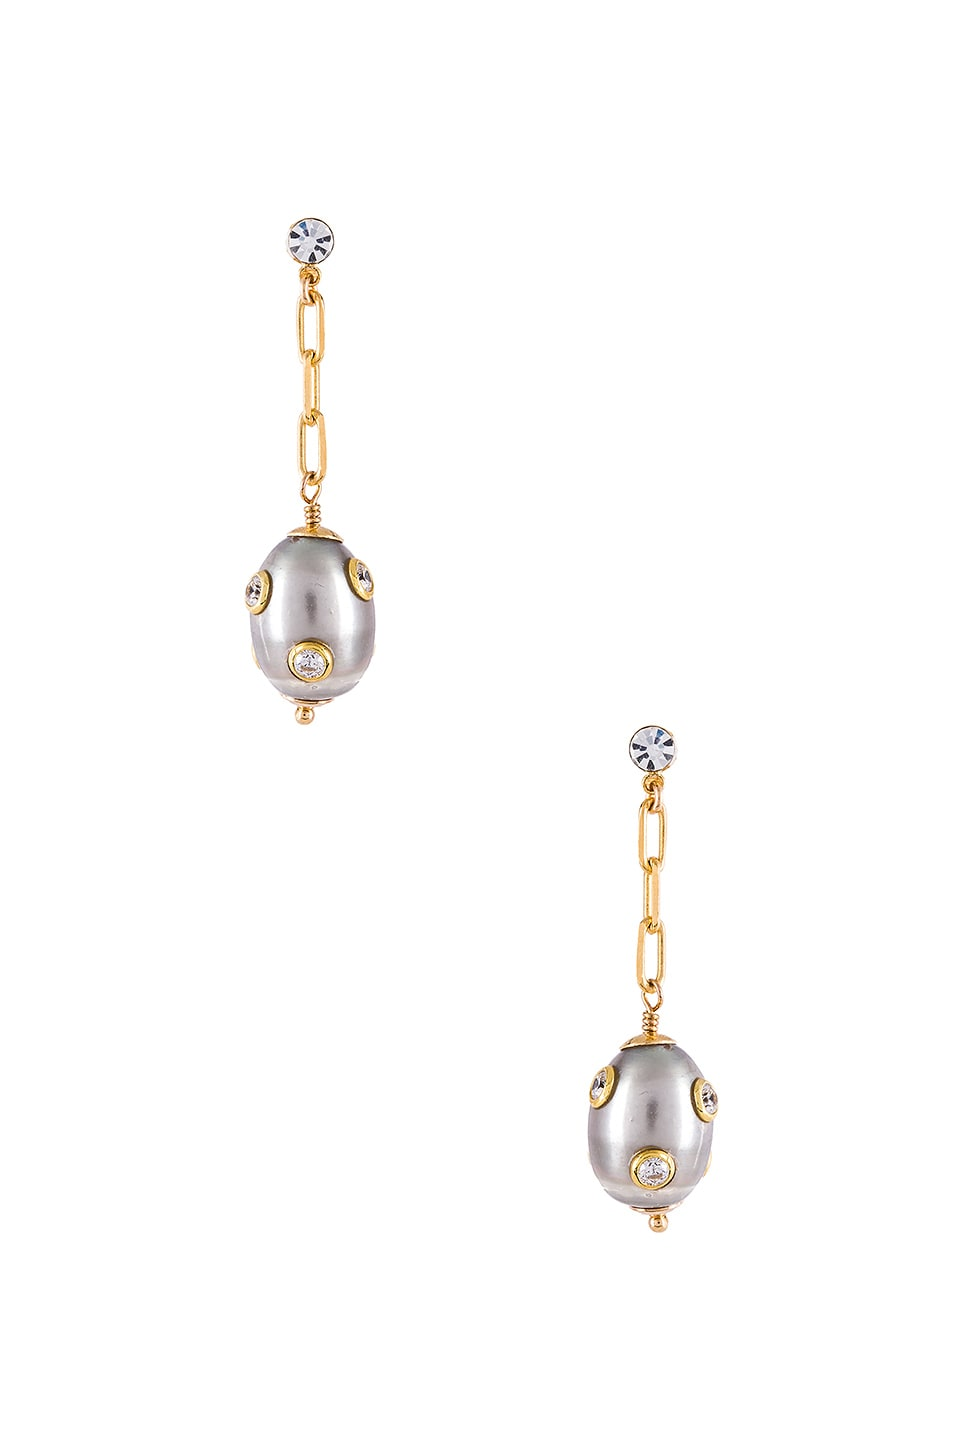 joolz by Martha Calvo Marseilles Drop Earrings in Gold